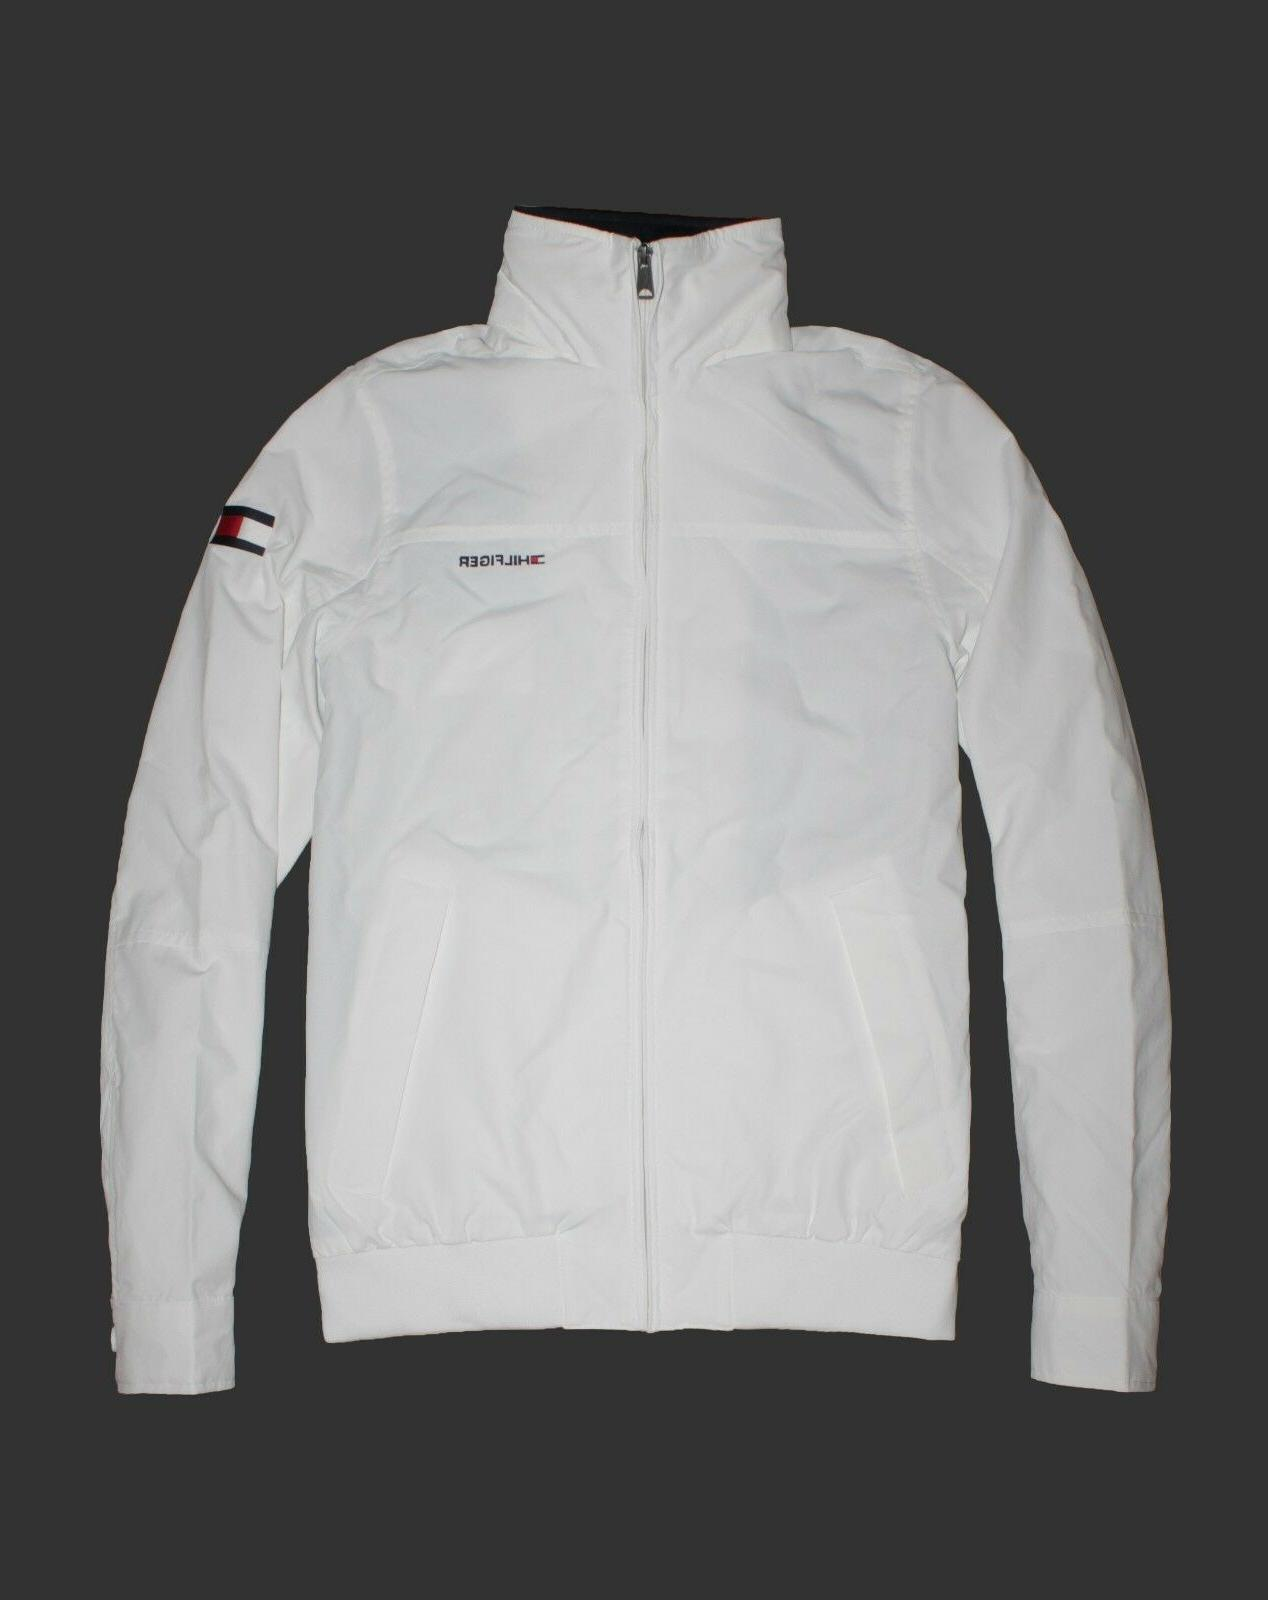 Tommy Hilfiger Men Yachting outerwear jacket all new